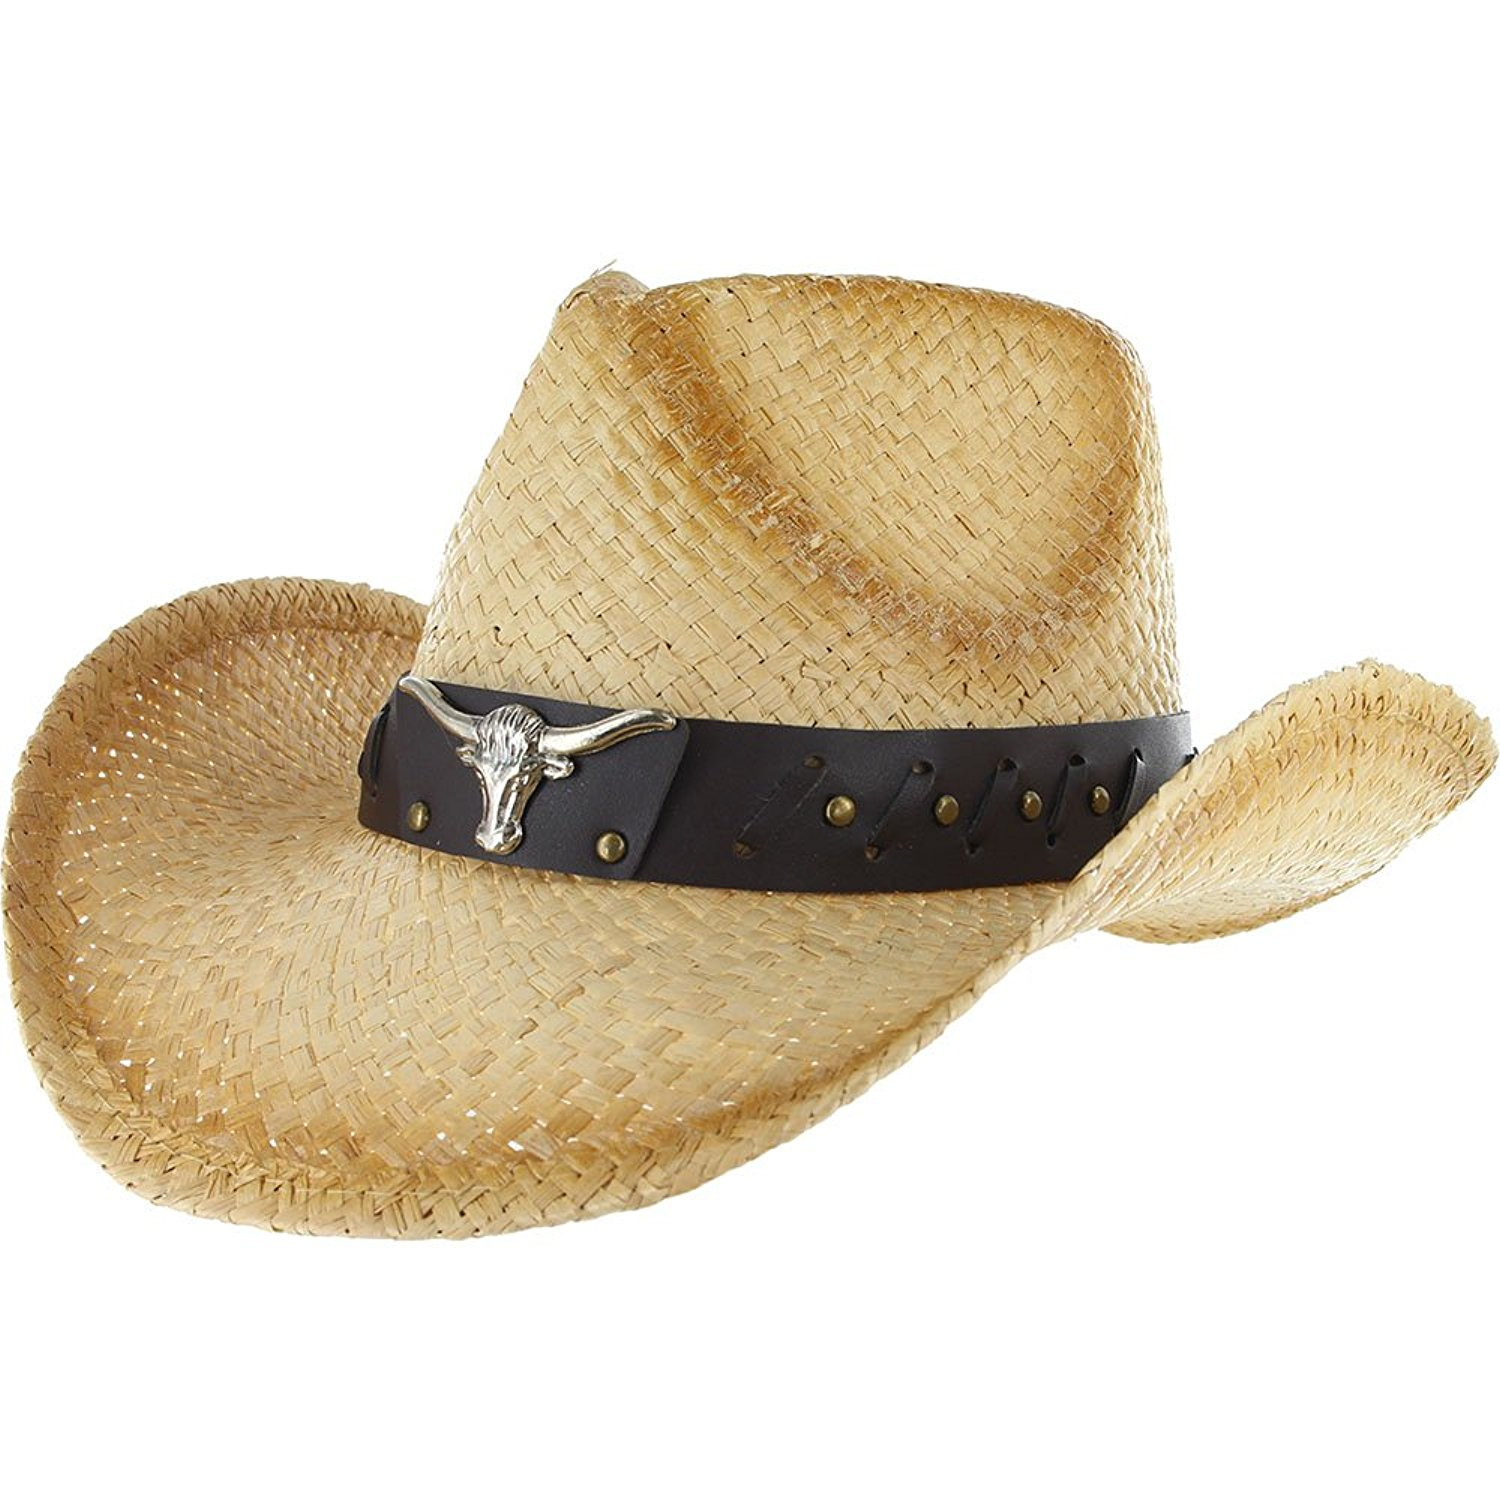 4c124f5cdce5e Get Quotations · COWBOY Shapeable Western Mens Womens STRAW HAT Panama  Cowgirl Raffia Sun Rodeo Concho Farm Field Summer